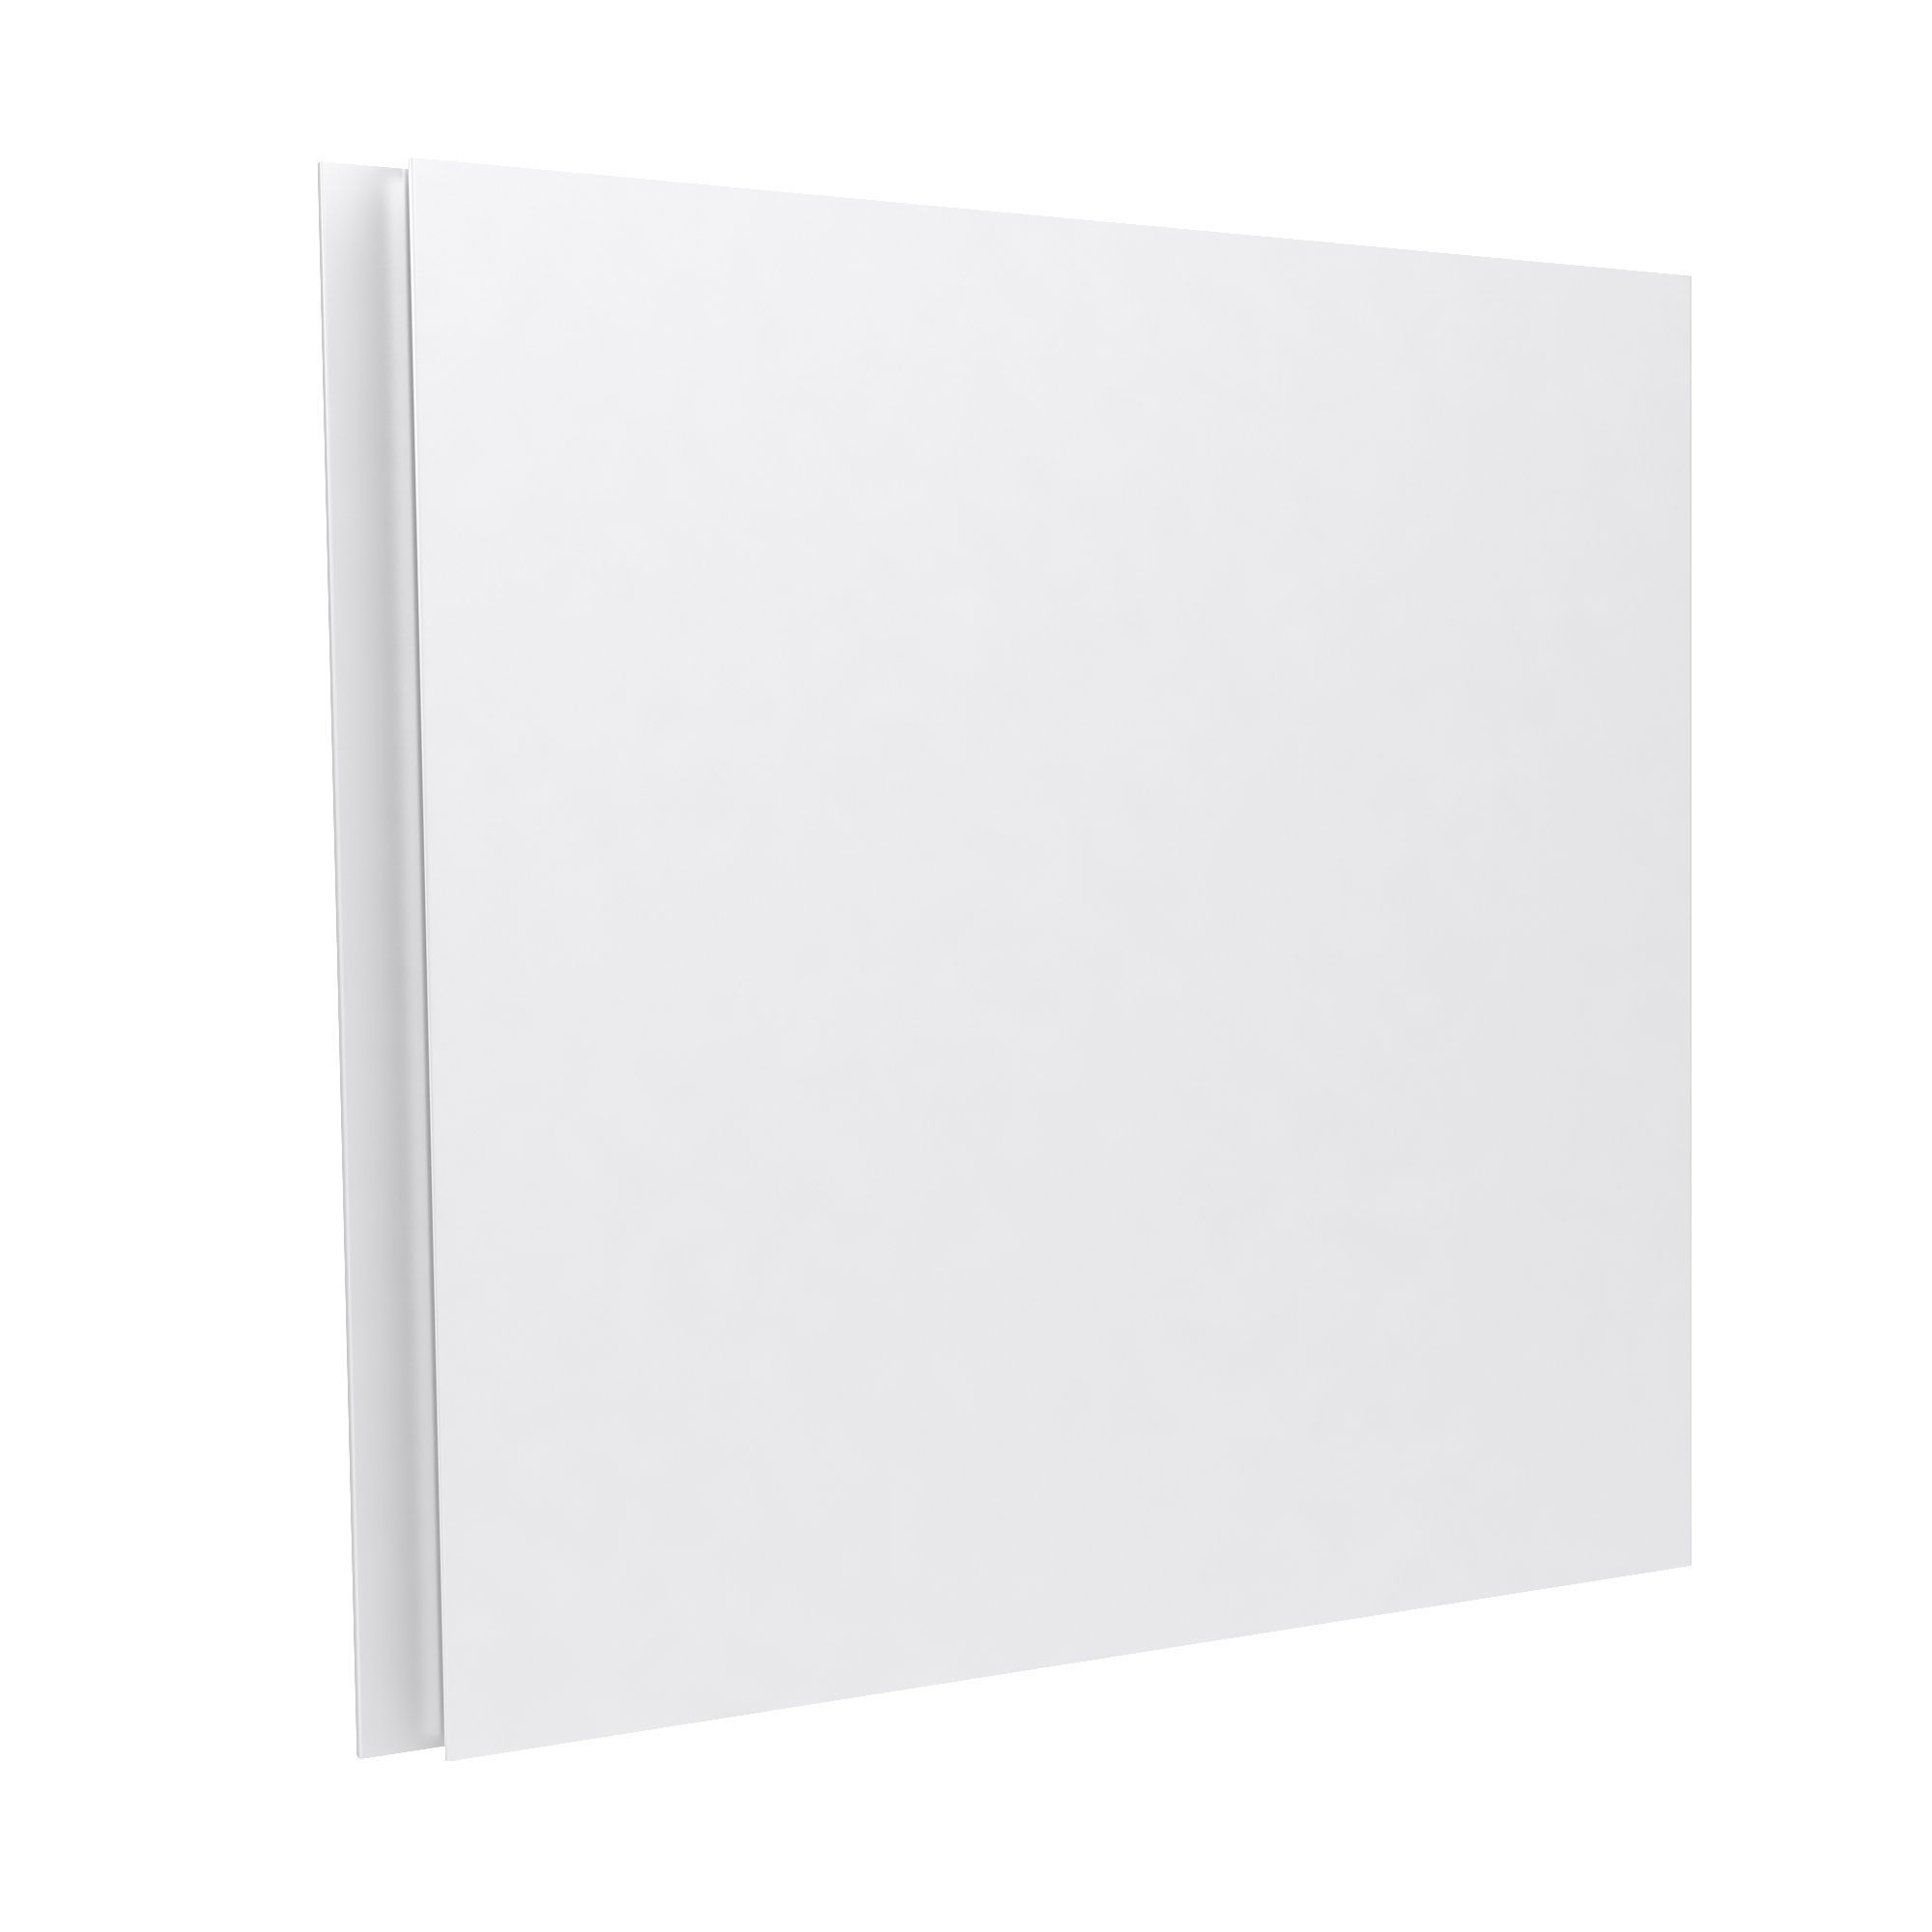 Darwin Modular White Bedside Cabinet Door With Integrated Handle (h)478 Mm (w)497 Mm